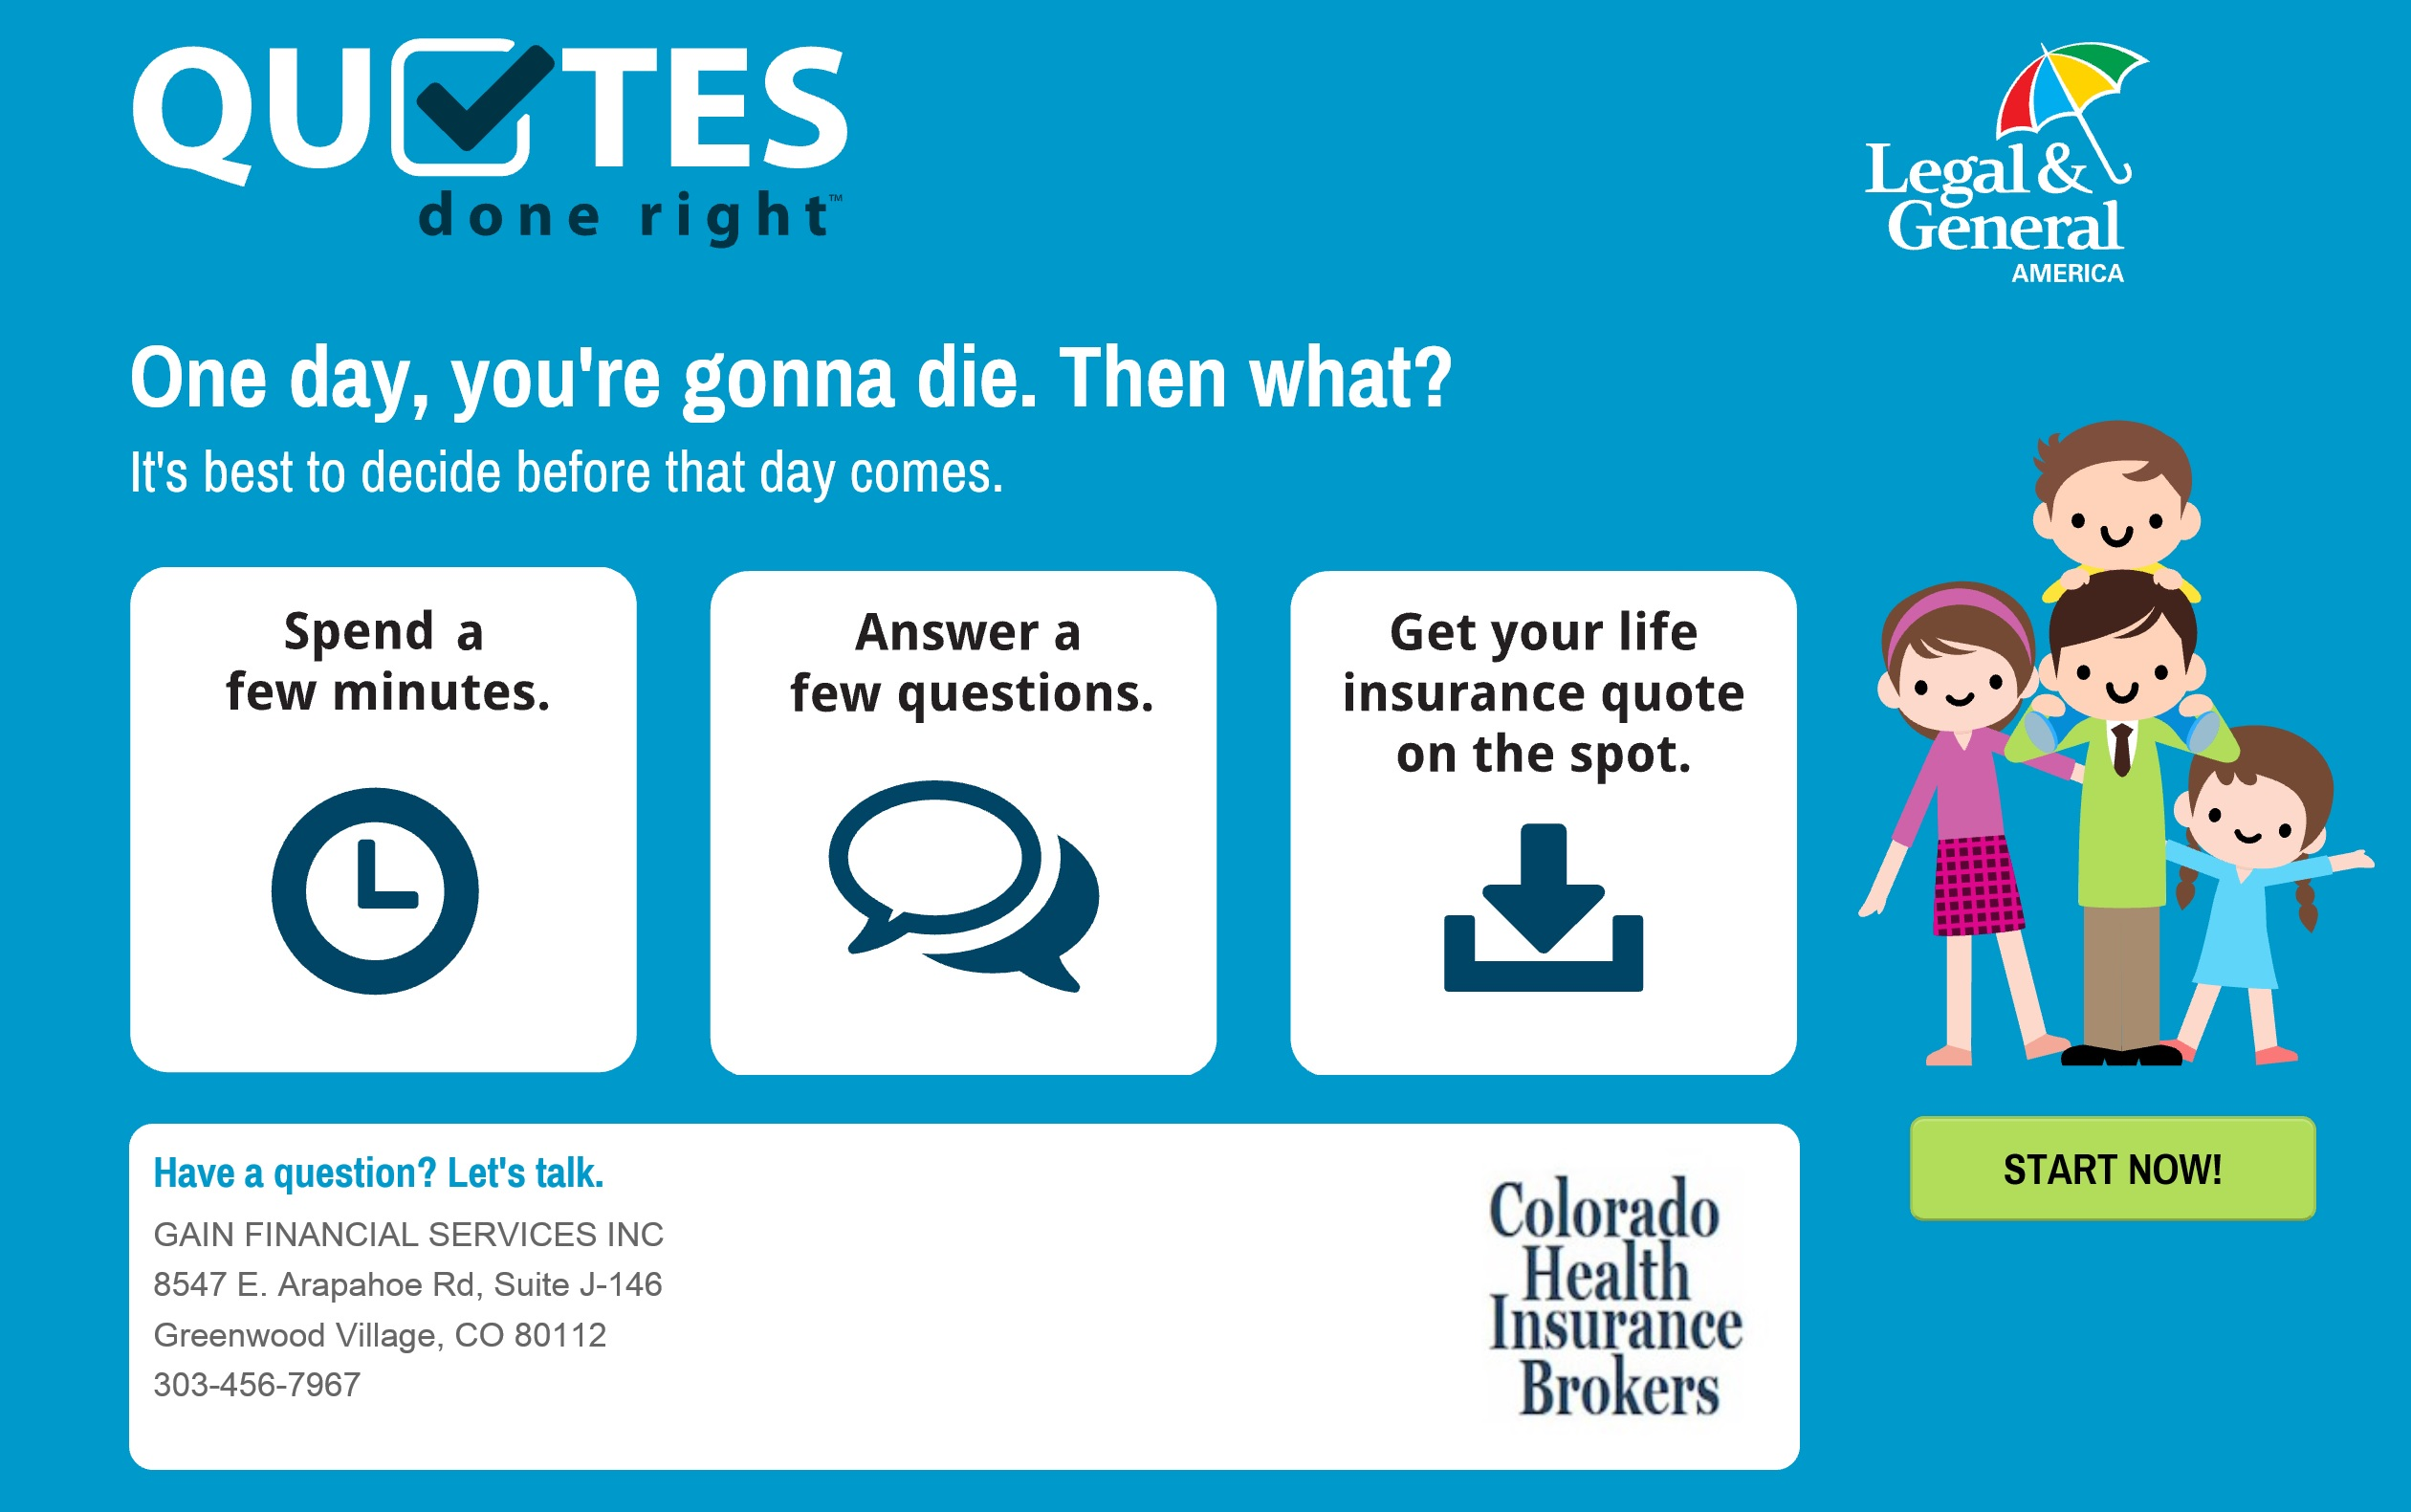 Life Insurance Quotes Made Fun